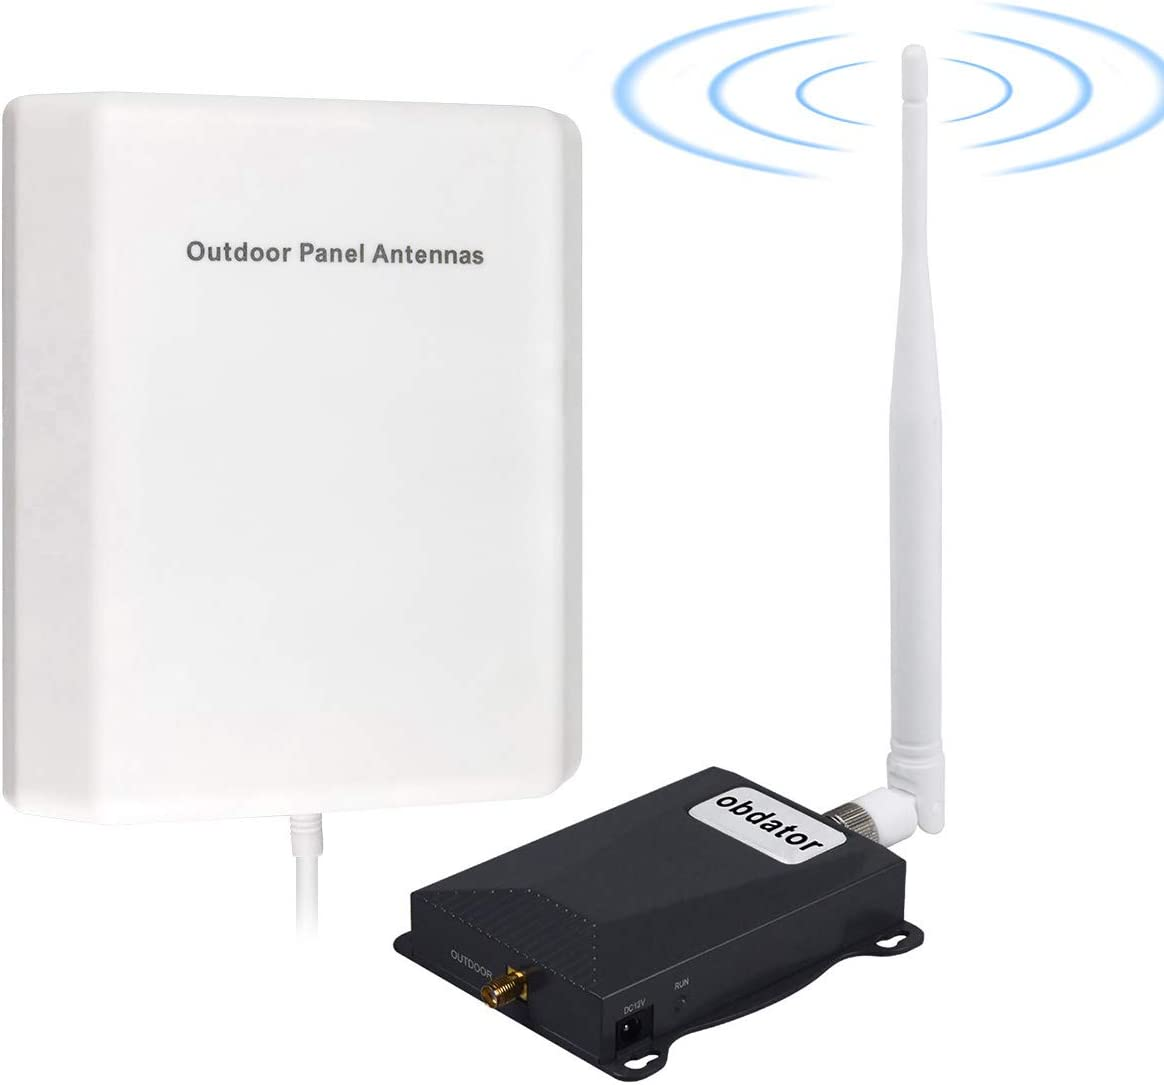 AT&T Cell Phone Signal Booster 4G LTE Cell Booster Band 12/17 FDD 700MHz ATT T-Mobile Cellular Mobile Siganl Booster Home Use Cell Phone Signal Amplifier Kit Boost Voice & Data